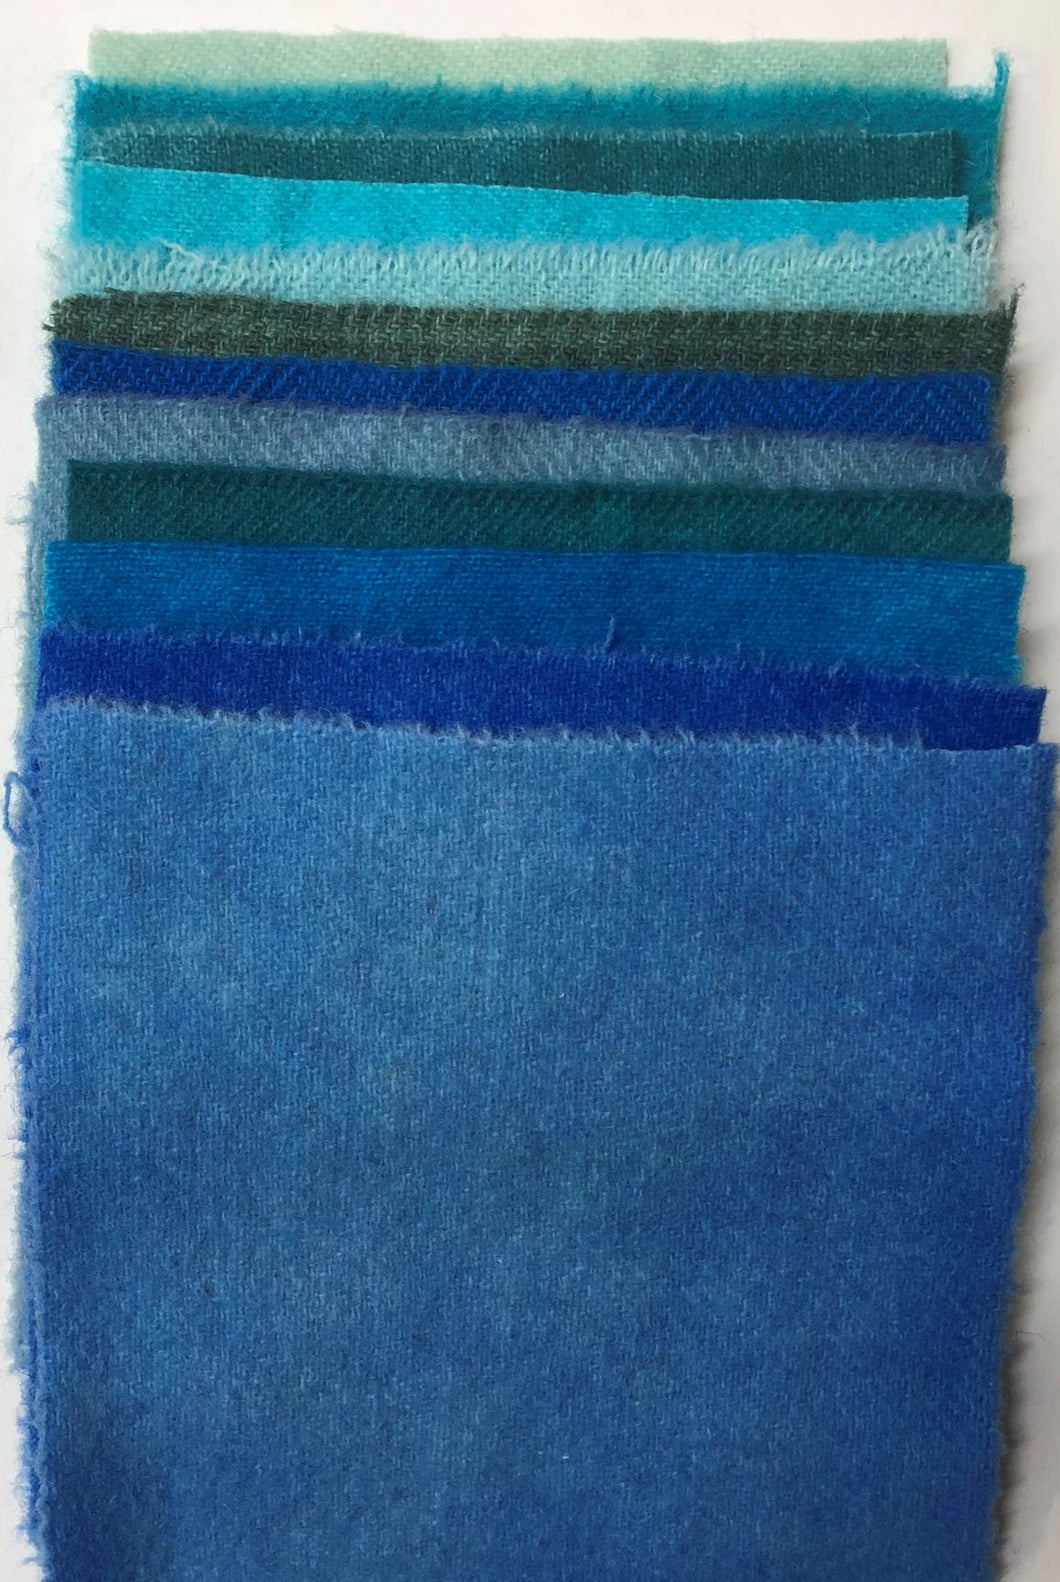 "Caribbean 5"" Square Hand Dyed Wool Pack"